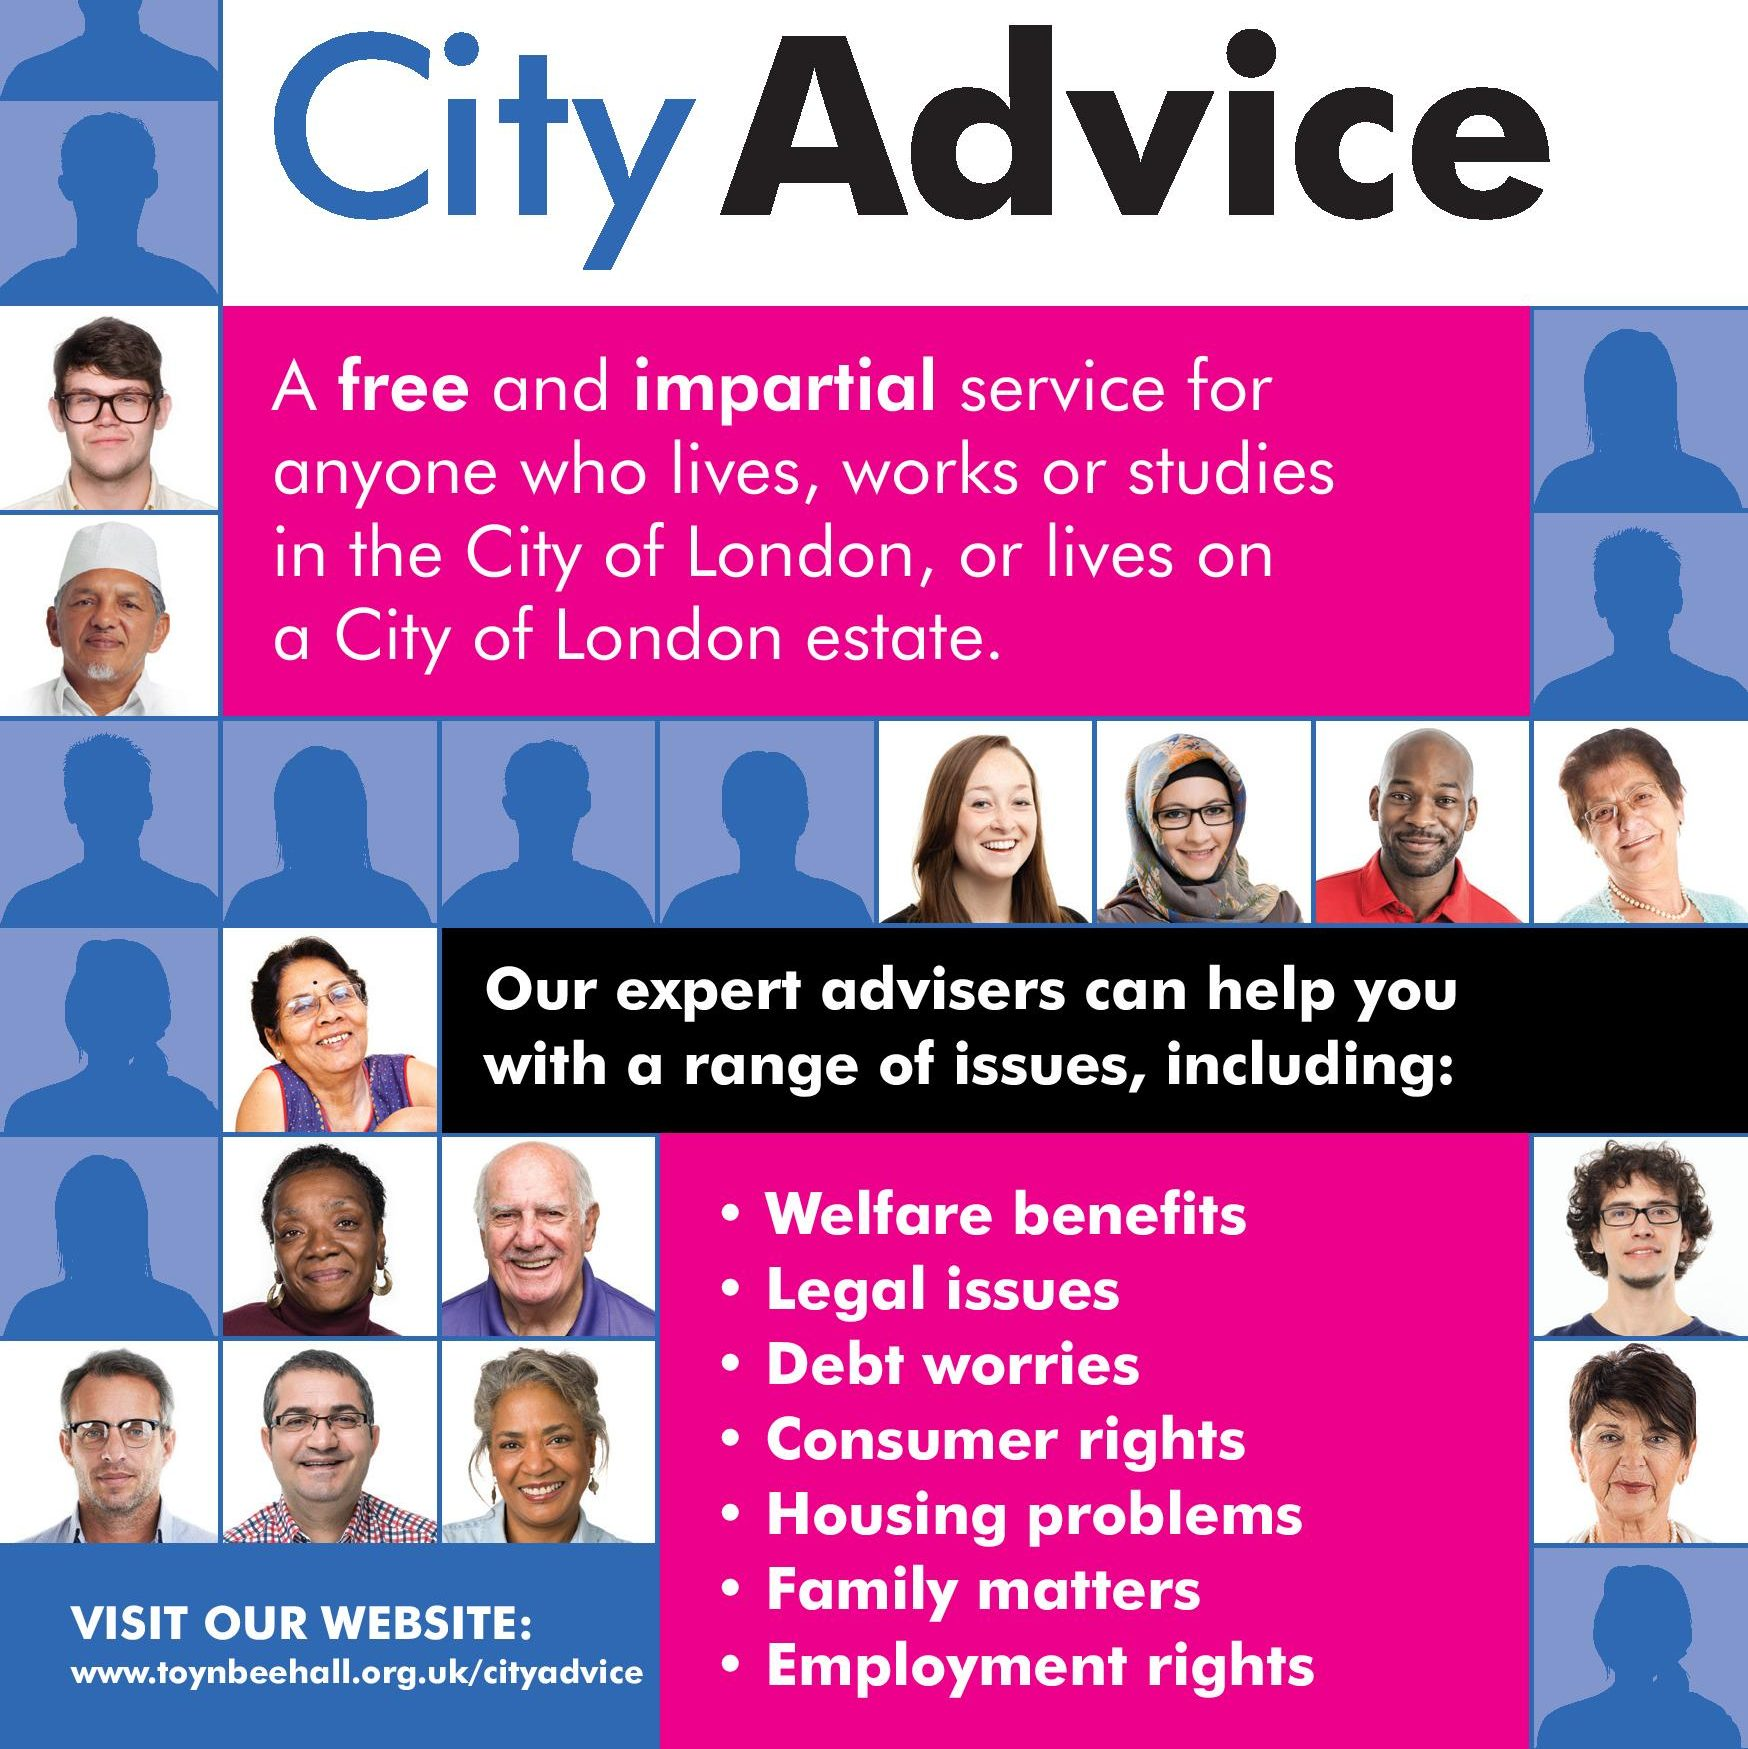 City Advice, a free and impartial service